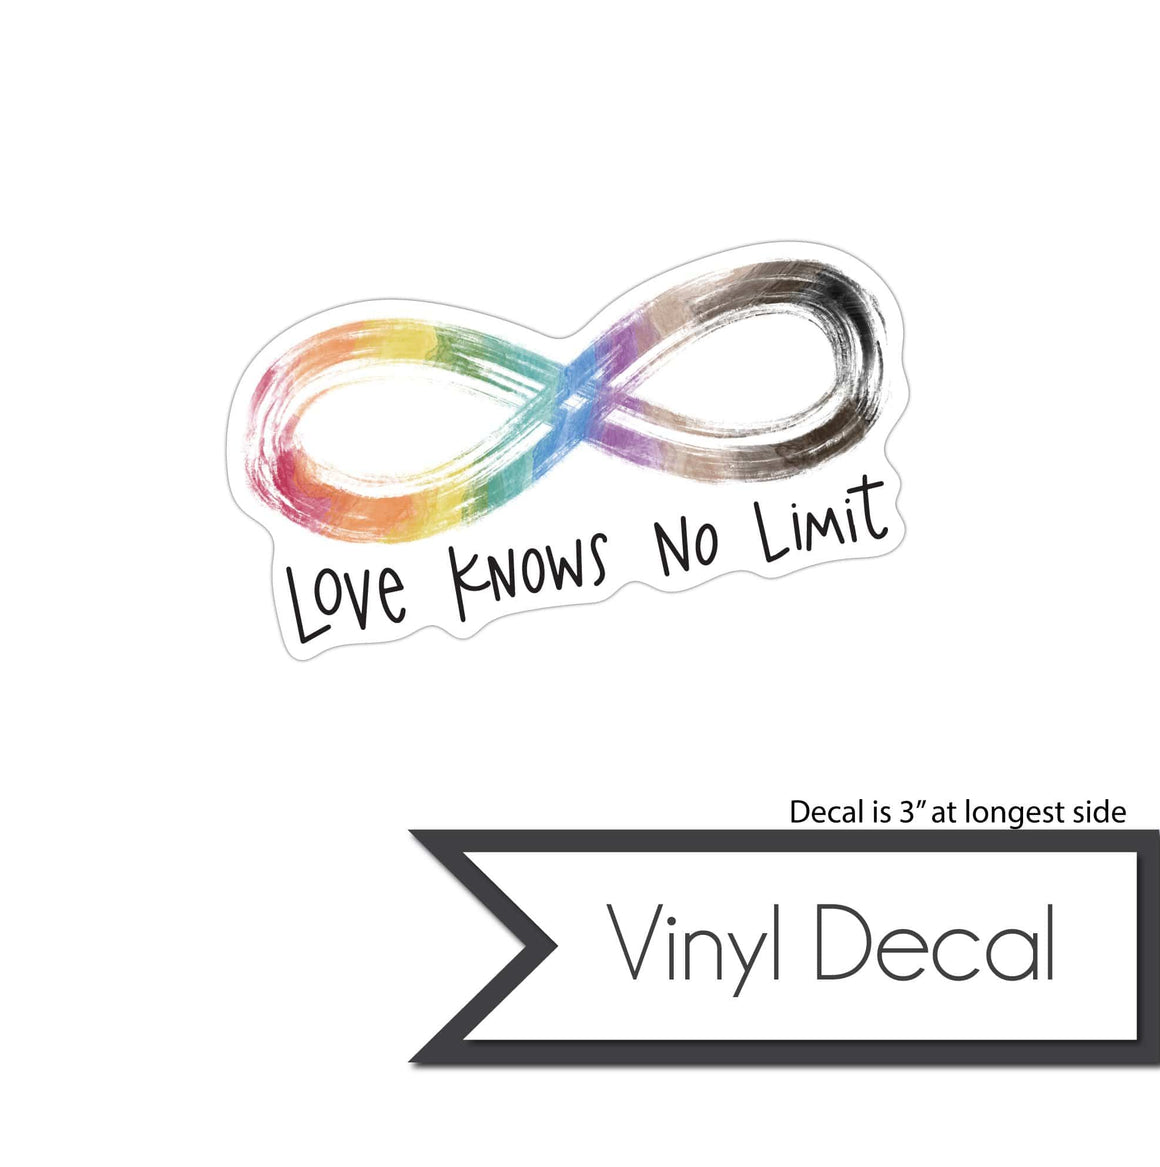 Vinyl Decal - Love Knows No Limit